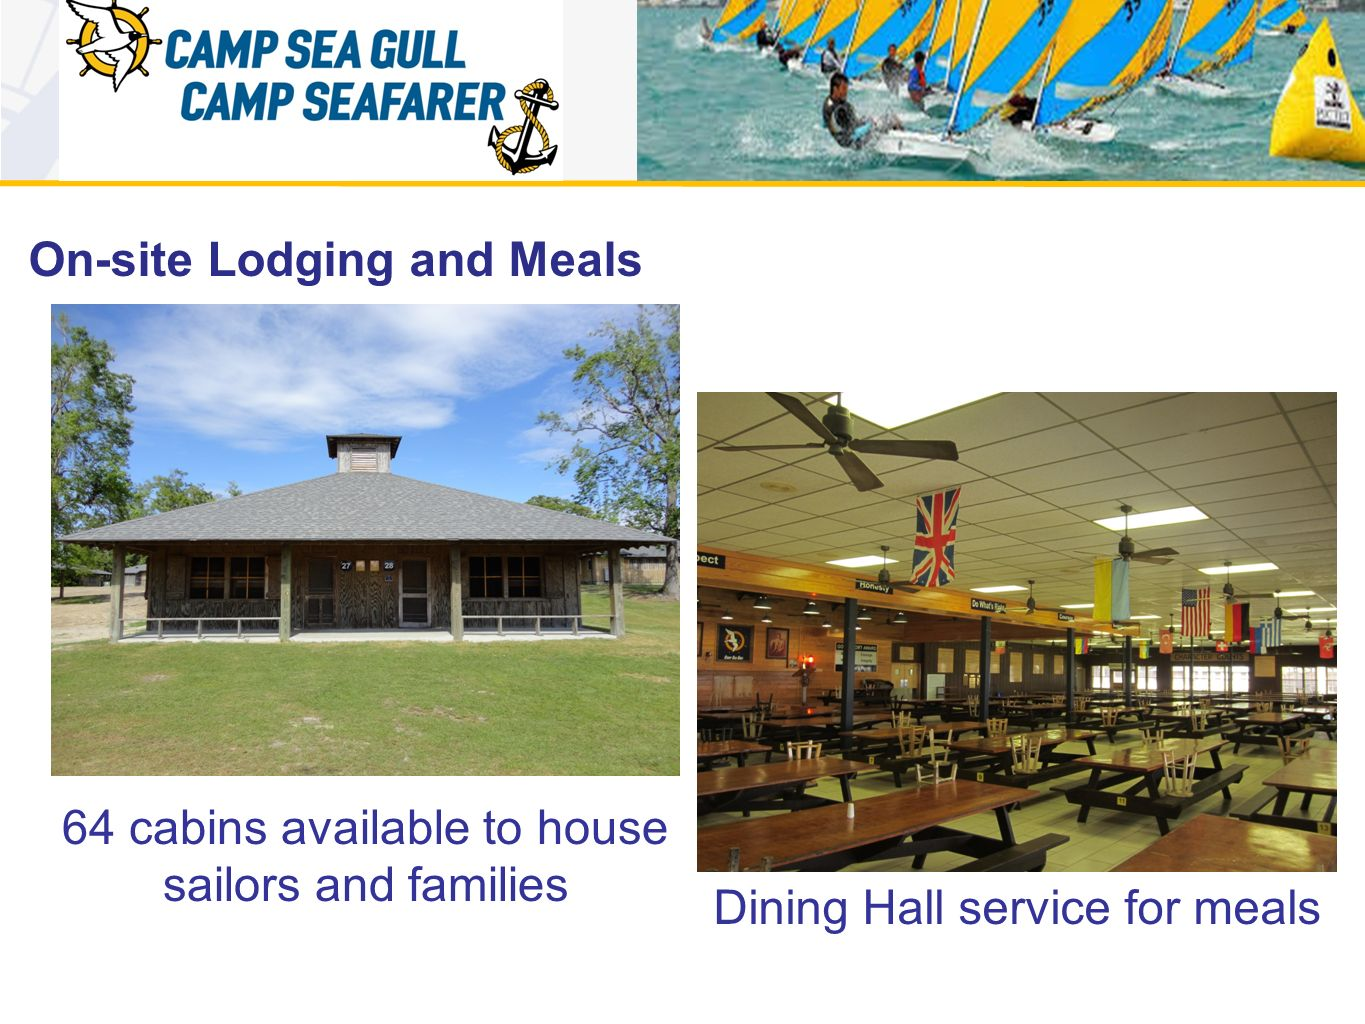 On-site Lodging and Meals 64 cabins available to house sailors and families Dining Hall service for meals